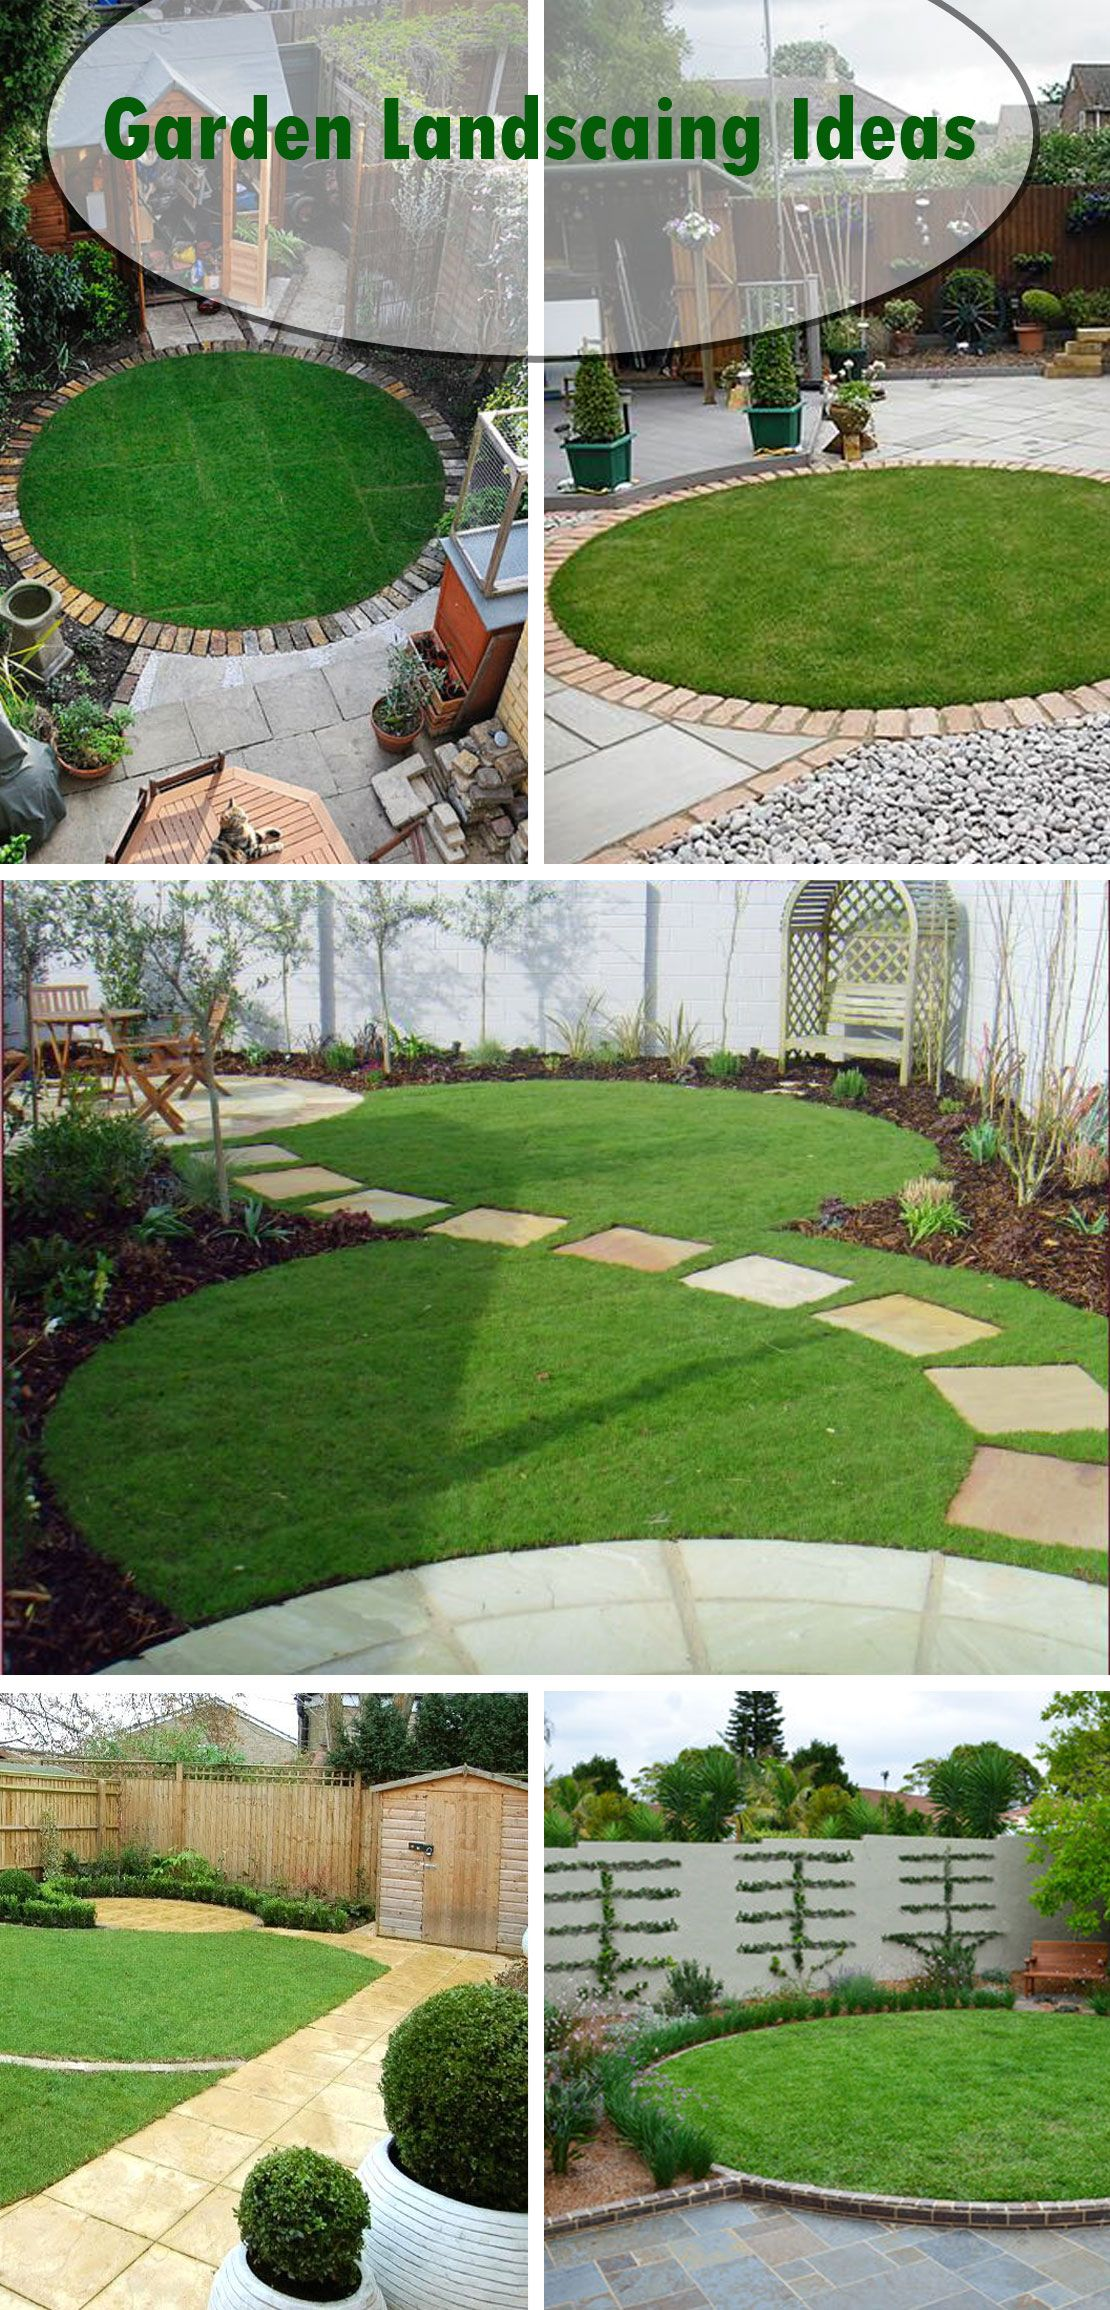 Amazing Front Yard And Backyard Landscaping Designs And Ideas Landscaping Best Inspiring Landscape Design Backyard Landscaping Plans Backyard Garden Design Backyard landscape design ideas